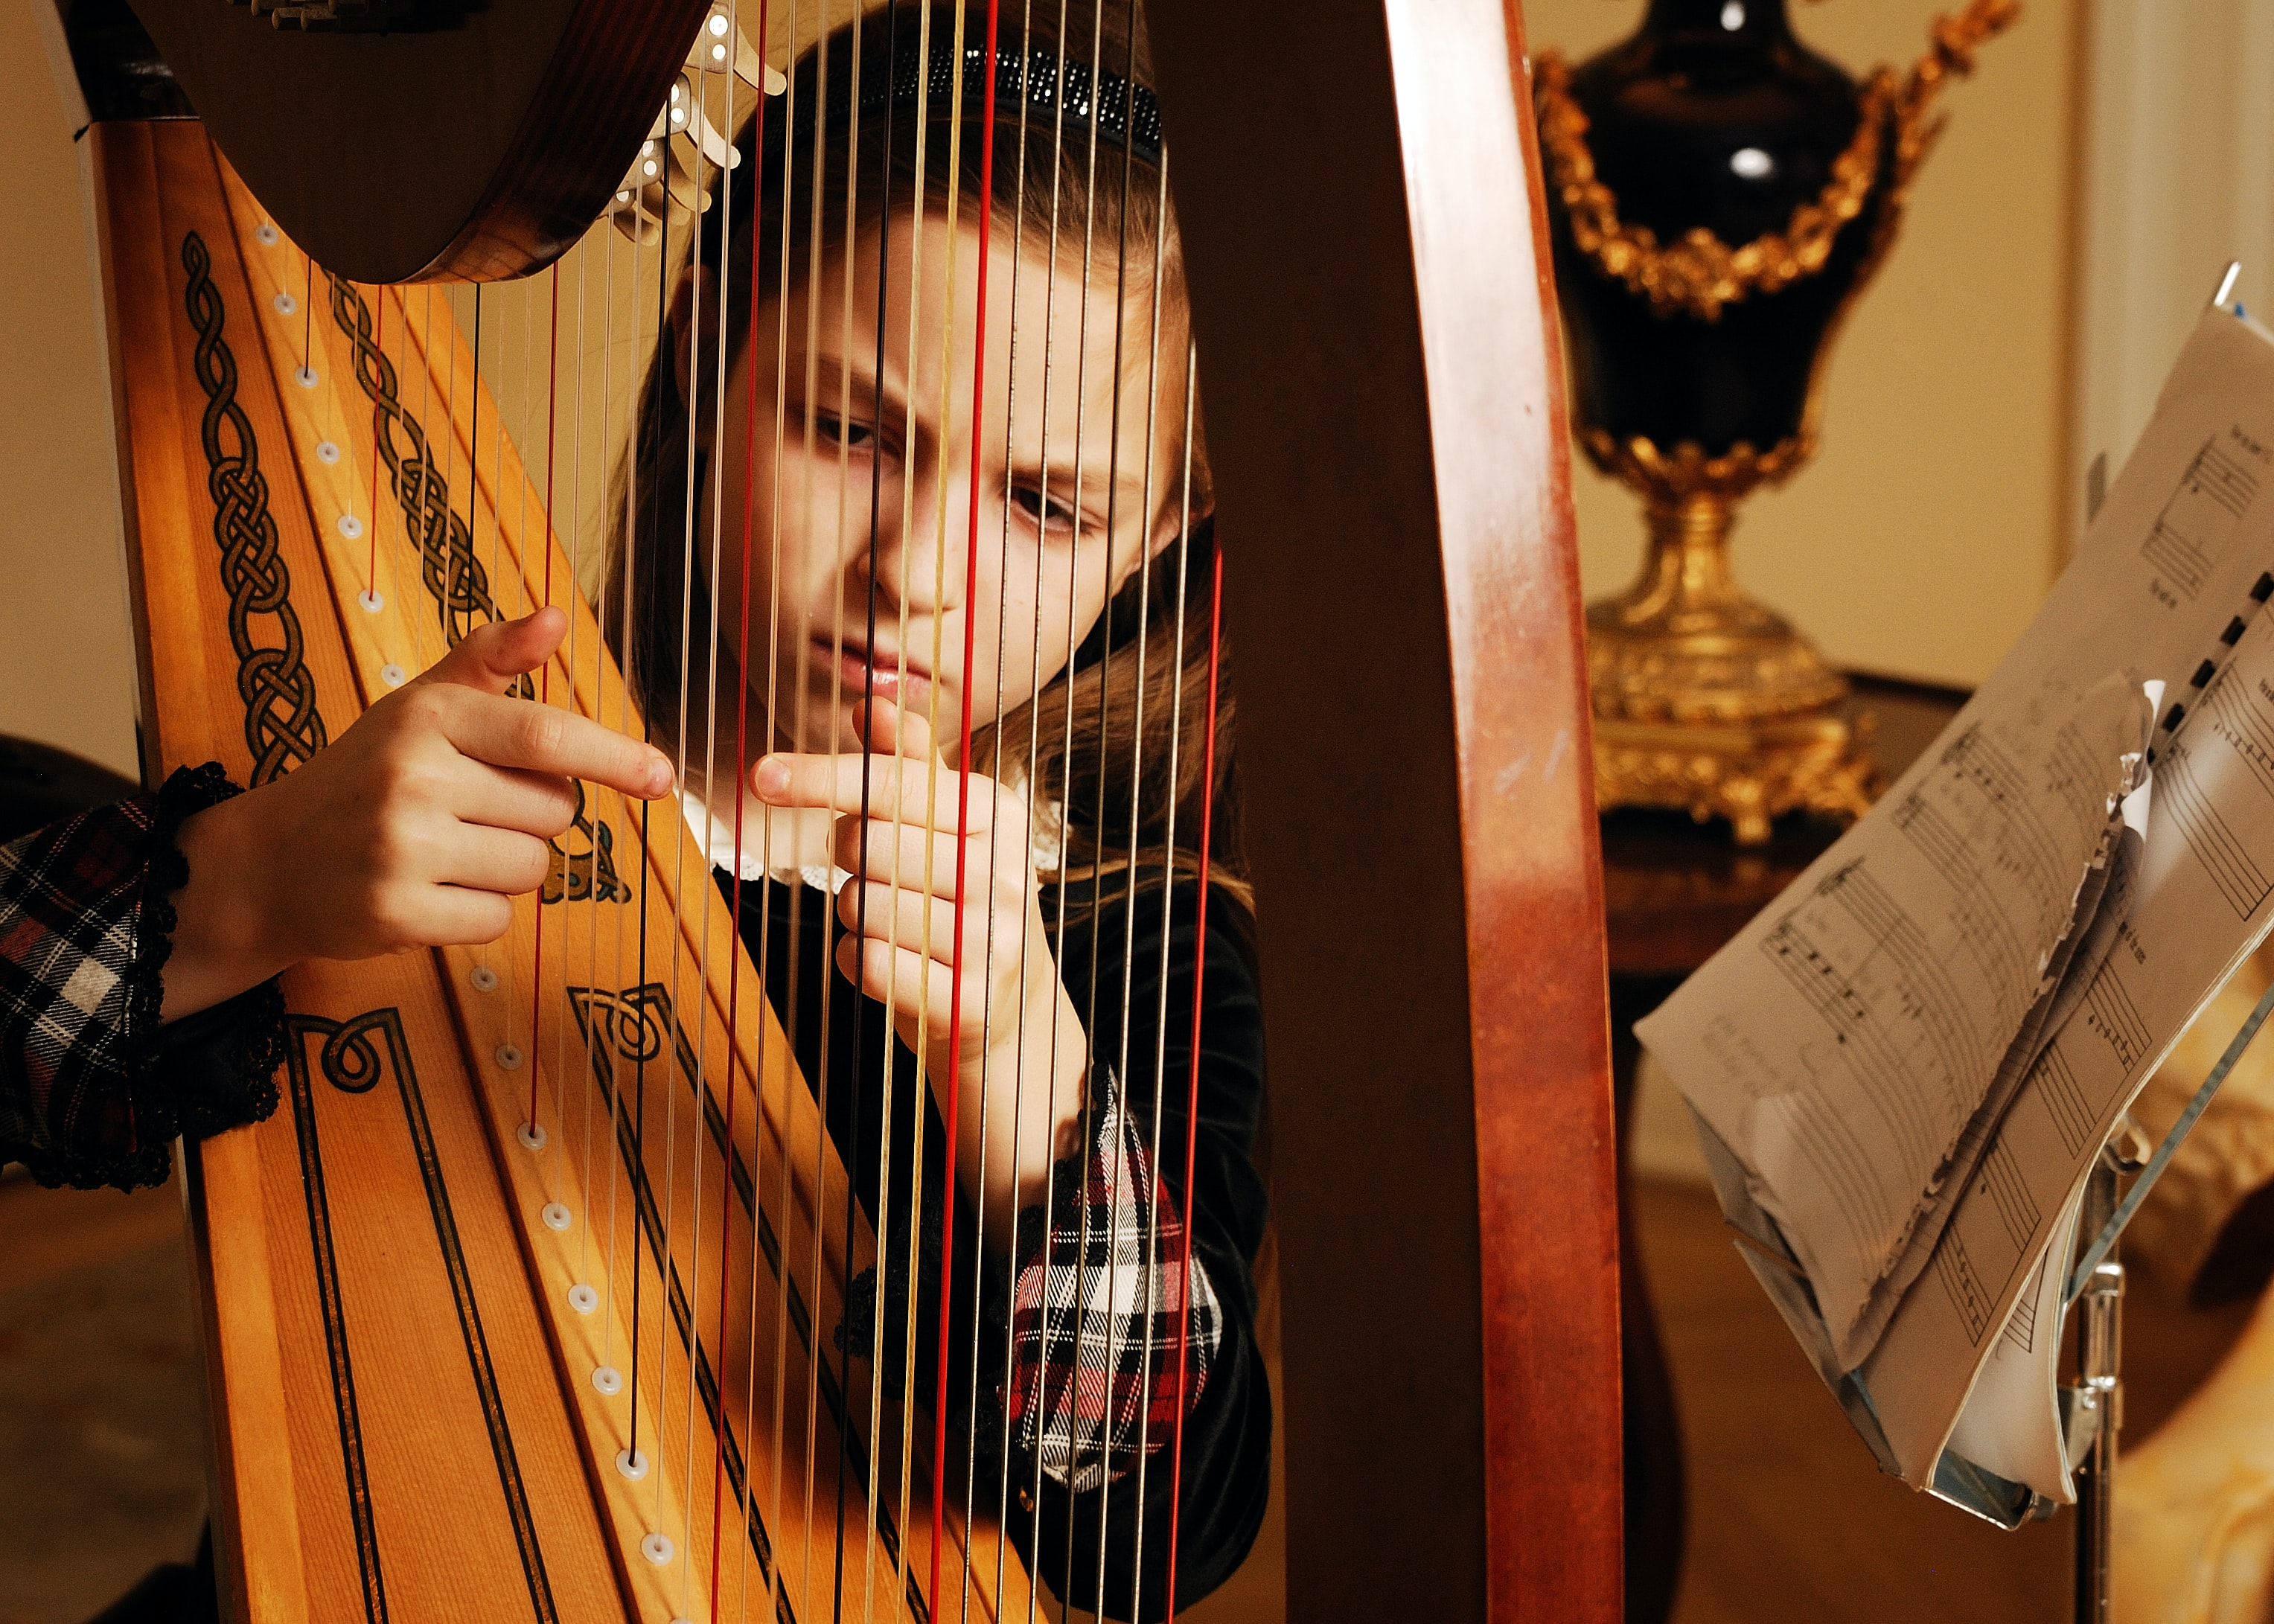 A young girl scowling as she plucks the strings of a grand wooden harp beside a sheet of music on a stand and an expensive looking vase